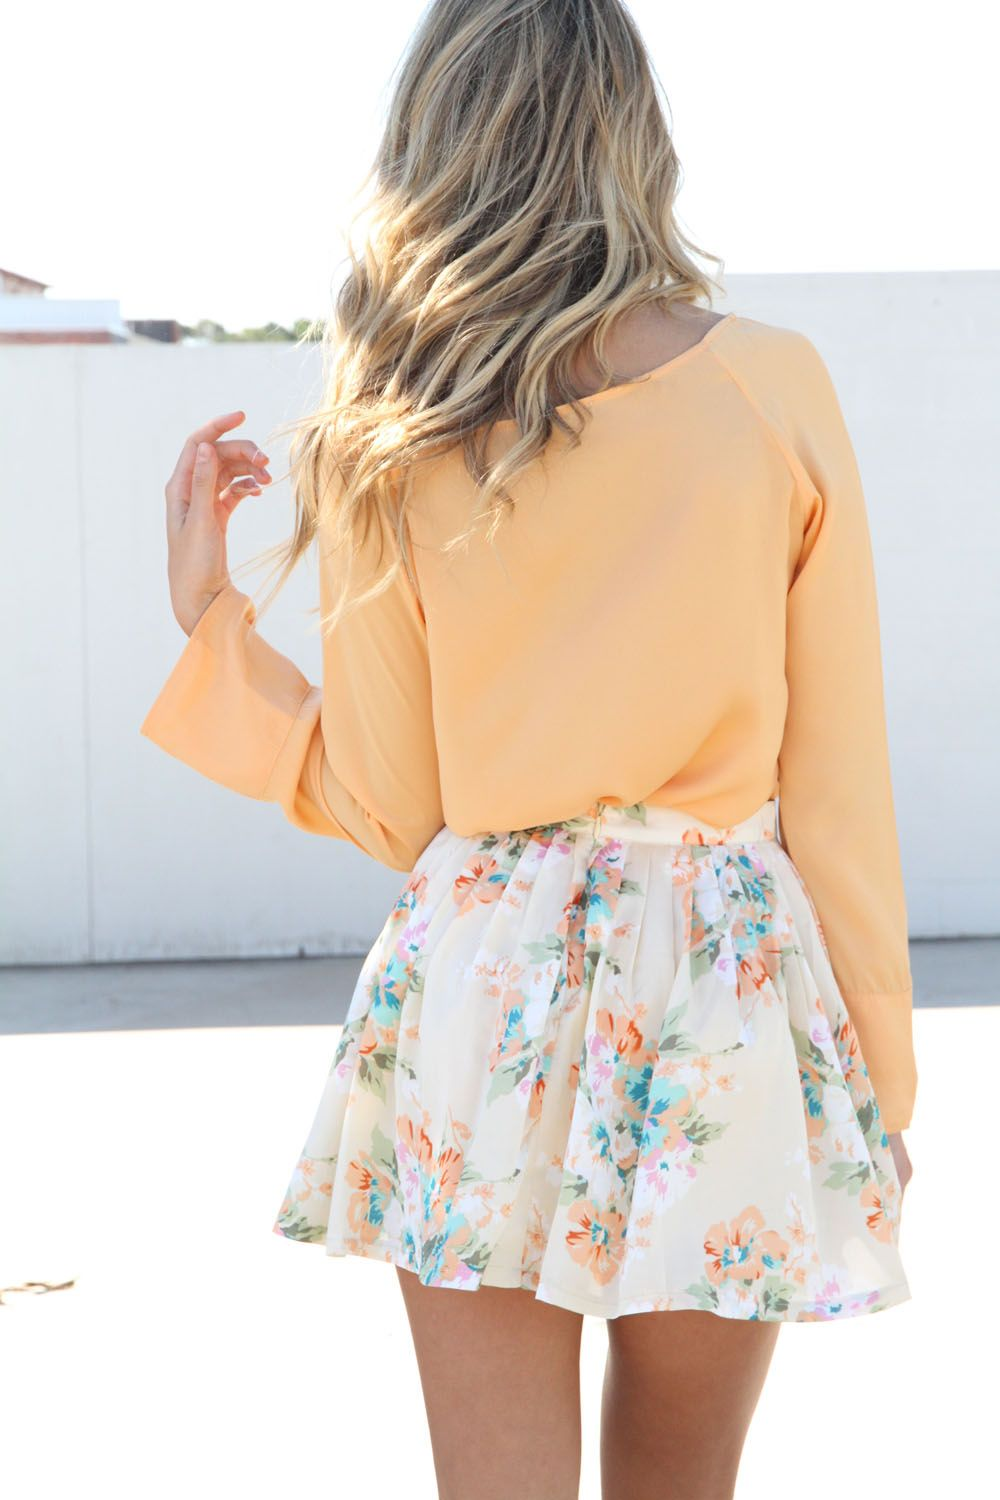 Floral skirt and peachy top my style pinterest peach colors